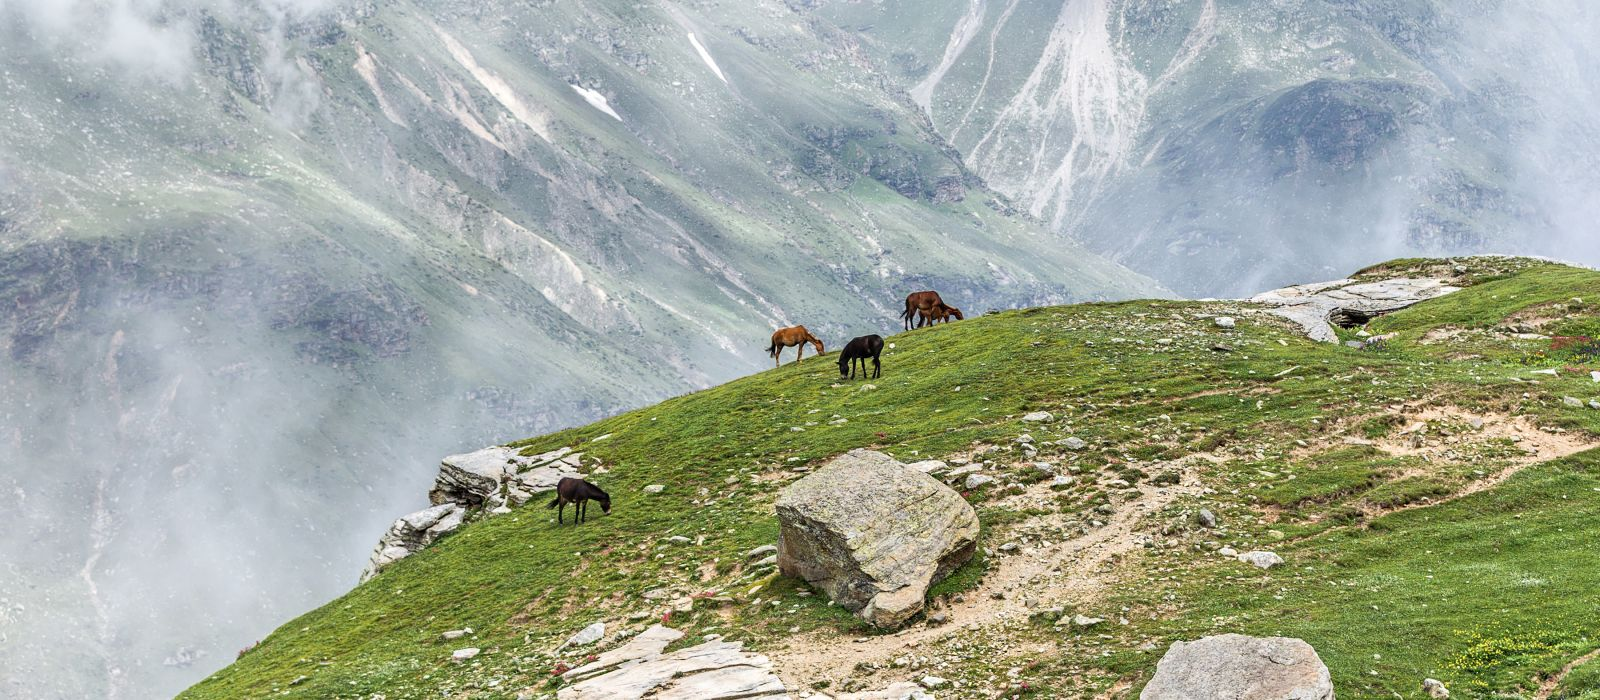 A herd of horses grazing, Rohtang Pass, Leh - Manali Highway - Tibet, Himalayas, Himachal Pradesh, Northern India